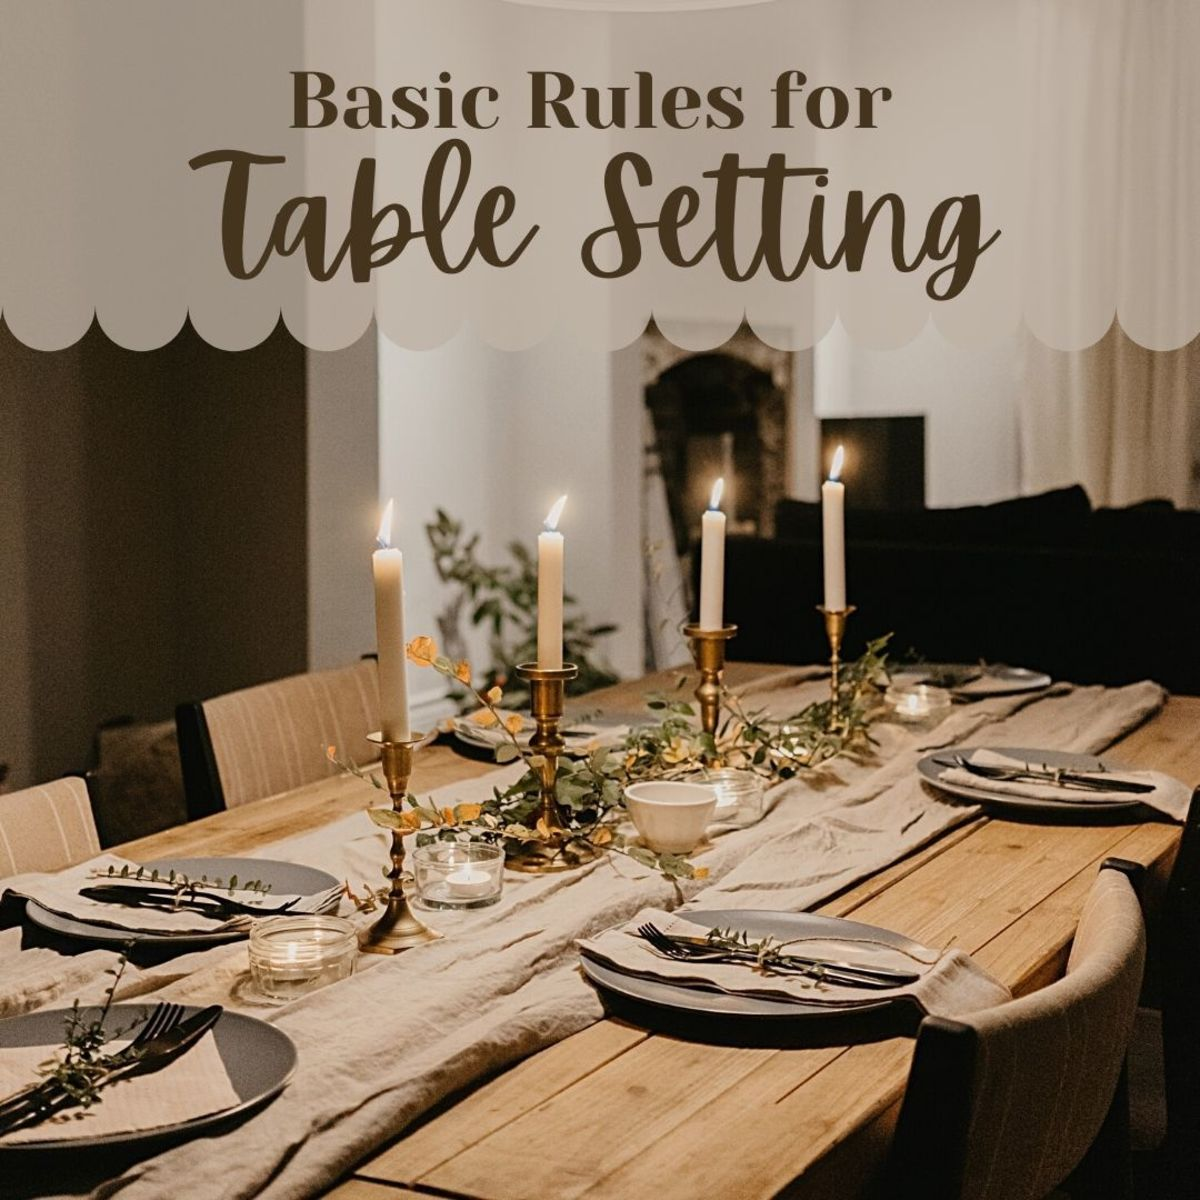 Setting a table is not as tricky as it seems—here is a basic guide to setting the perfect dinner table.